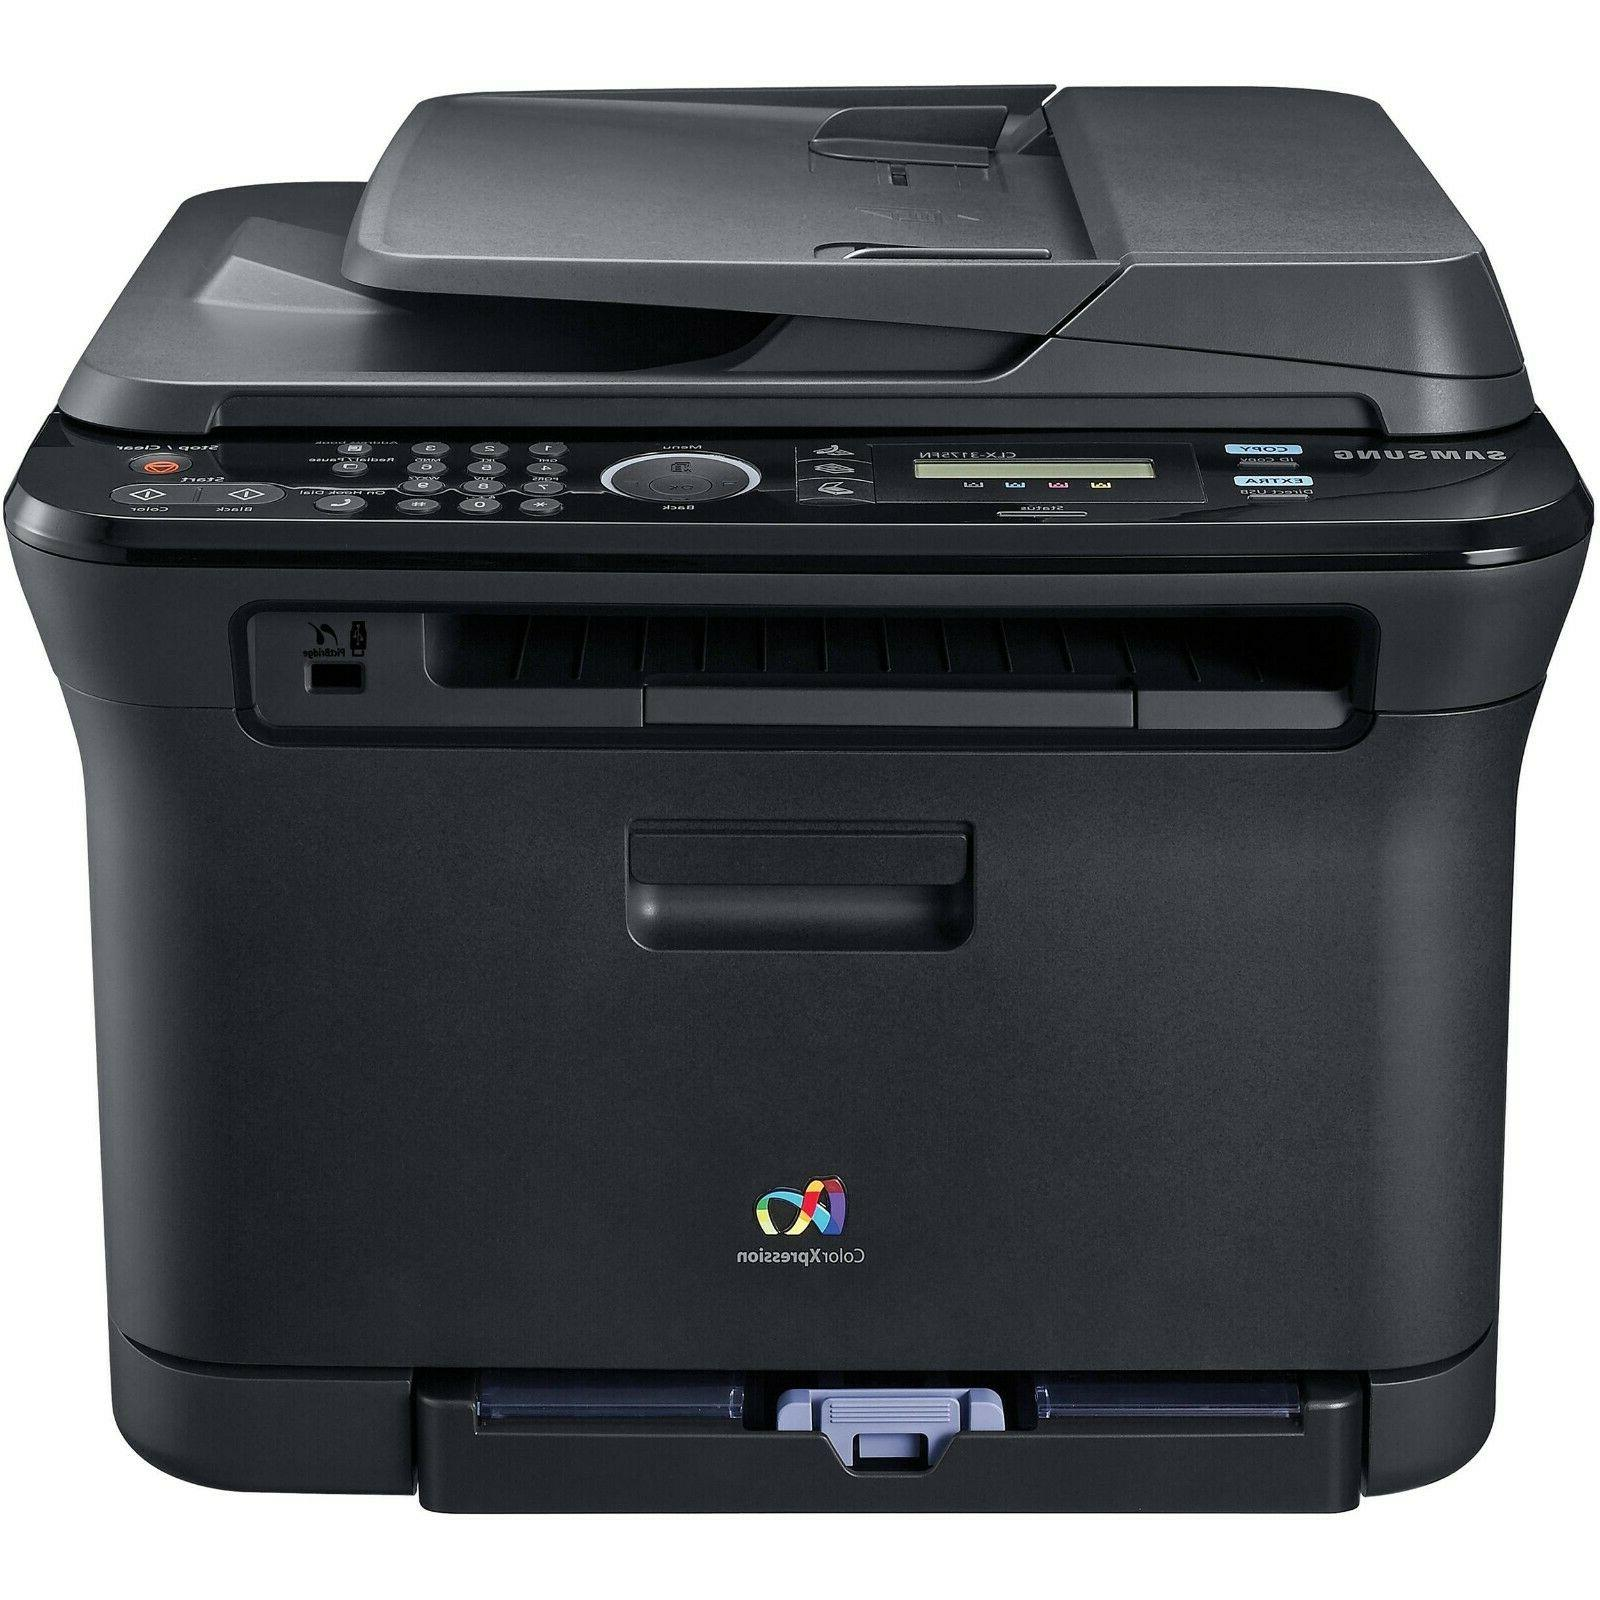 clx 3175fw all in one laser printer